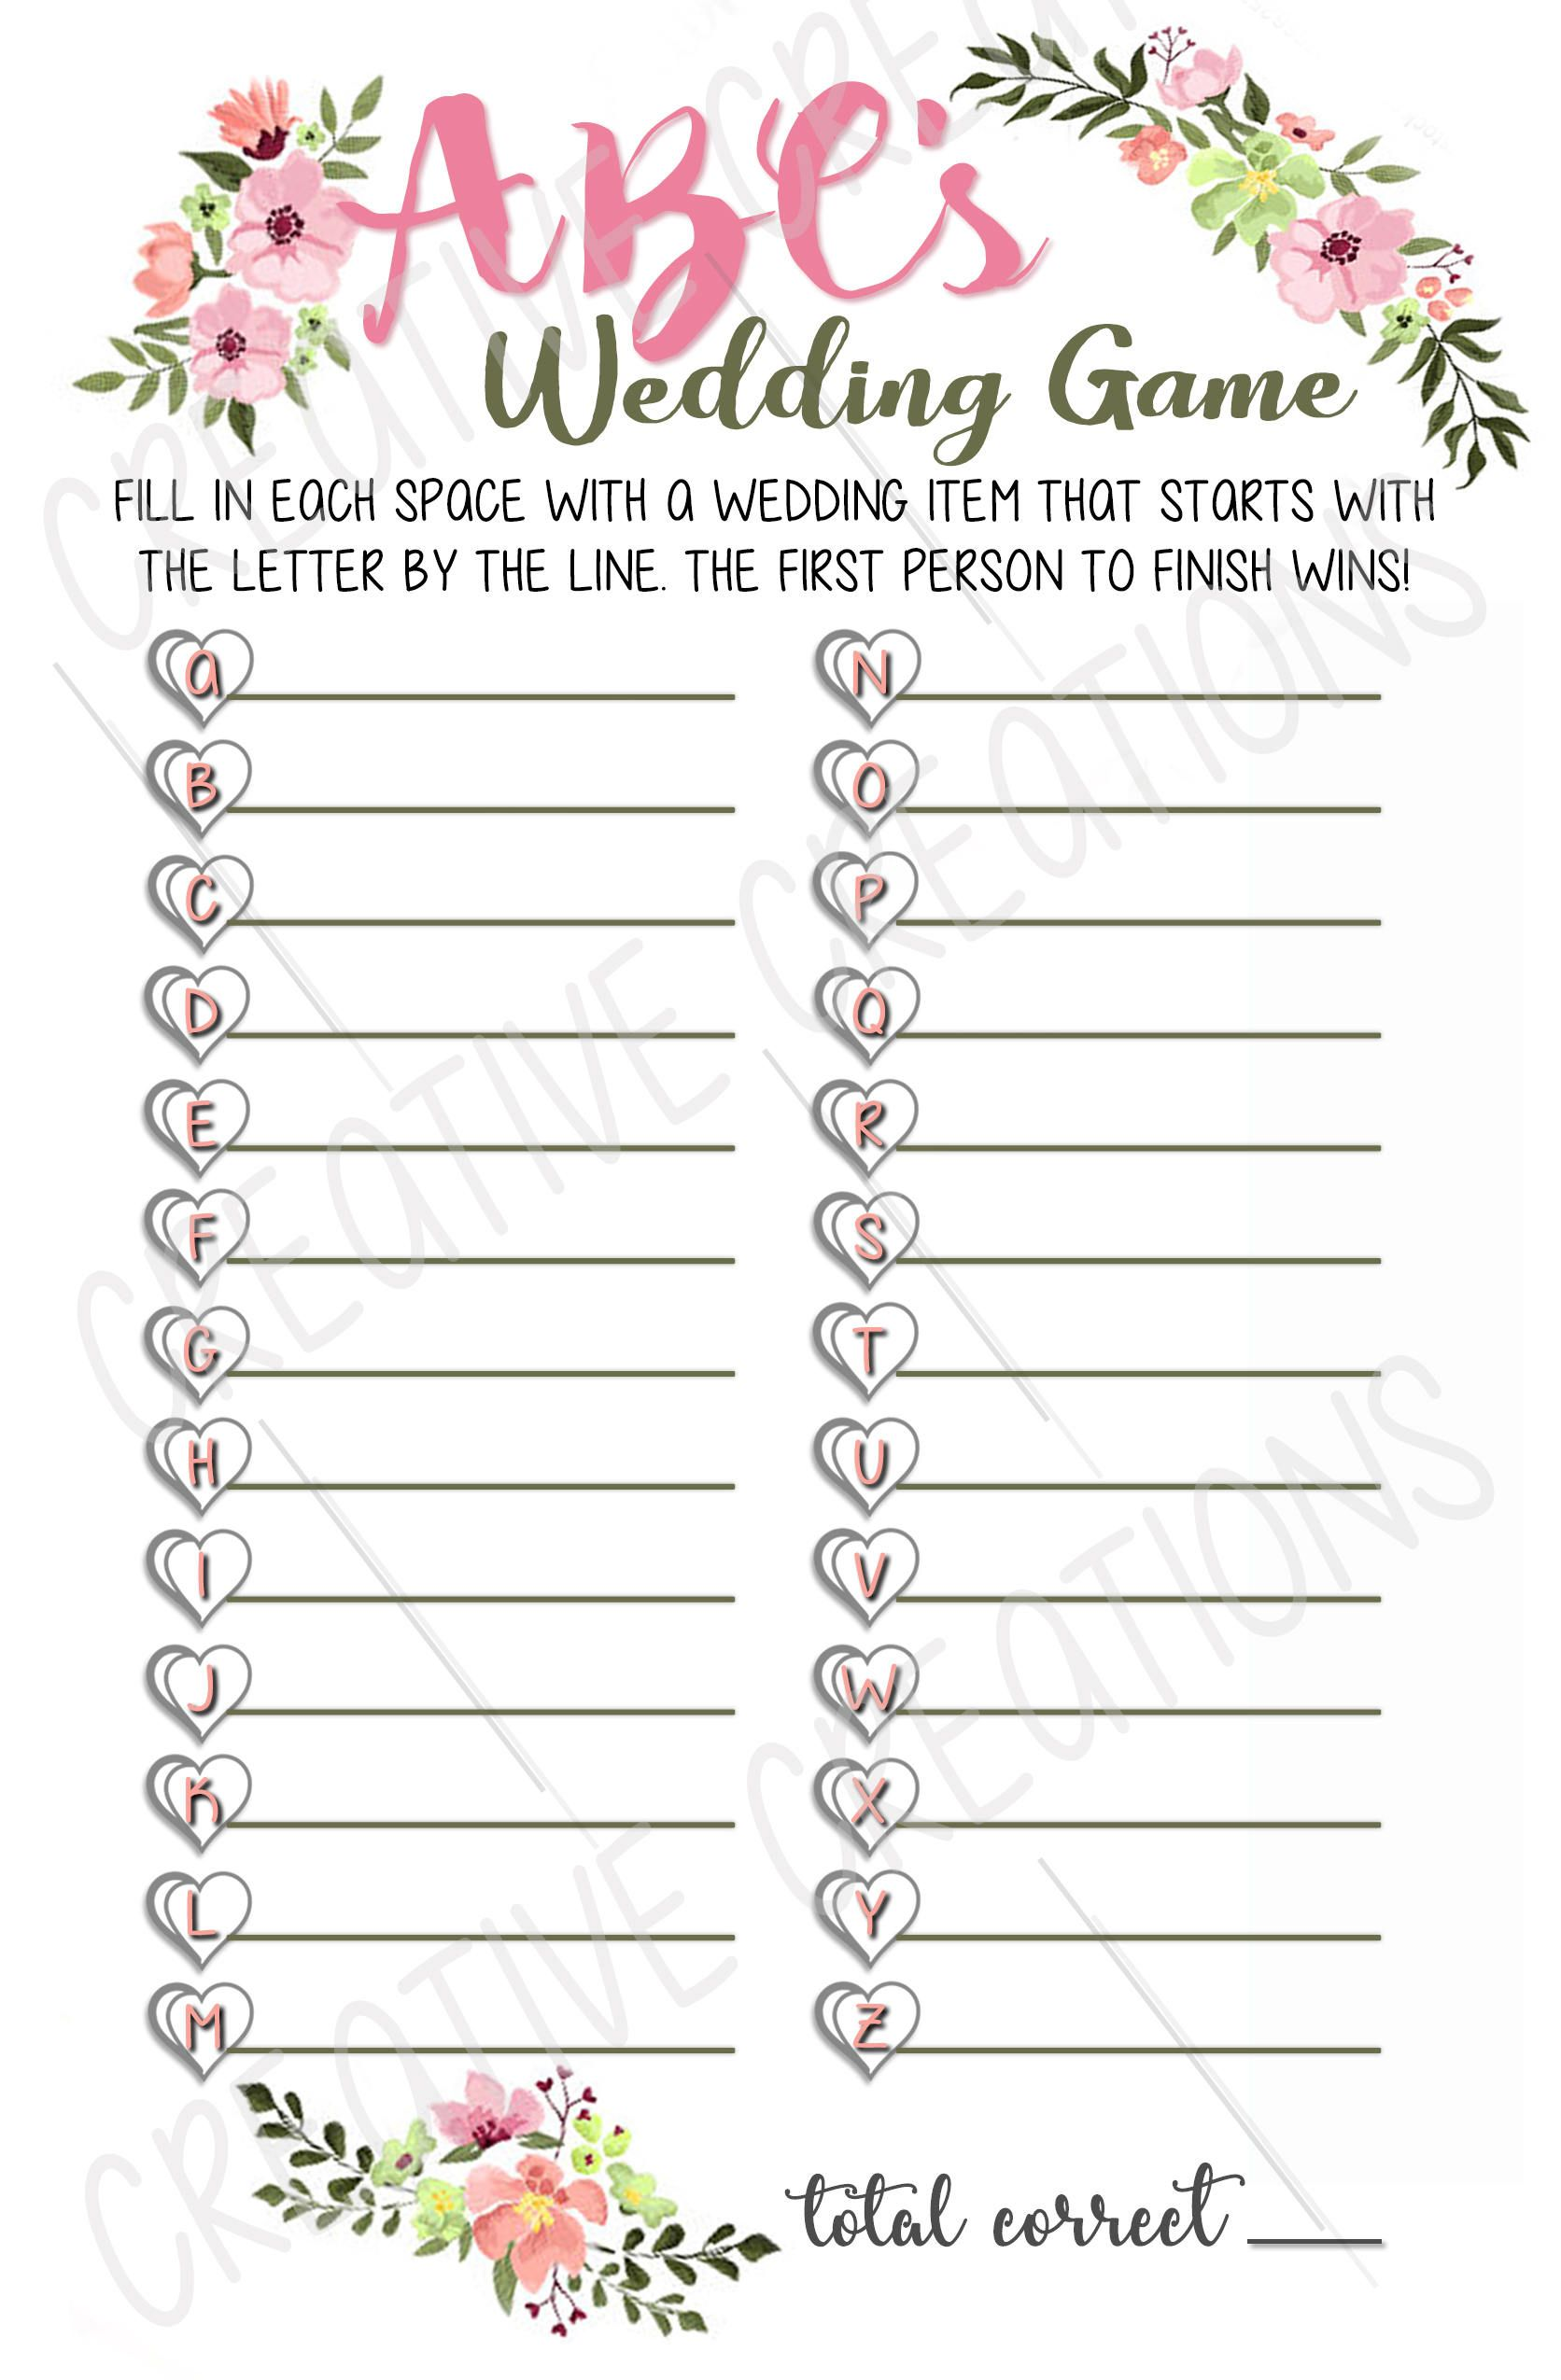 Bridal Shower Game Abcs Bridal Shower Game Printable Template